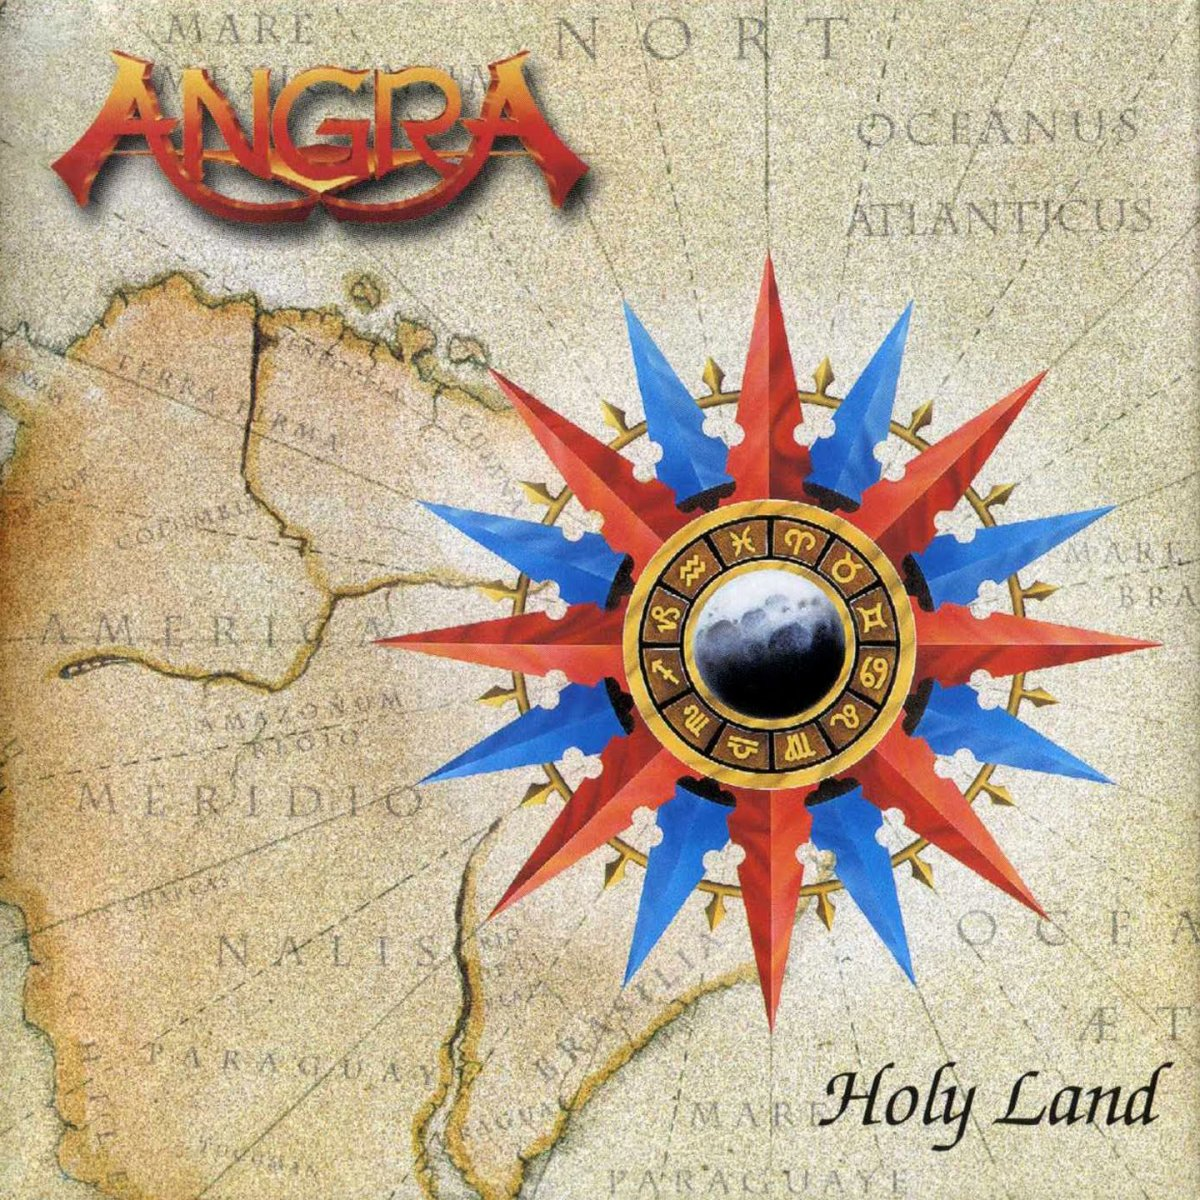 The front cover for the album represents a very old map. In the 15th and 16th centuries much colonization took place.